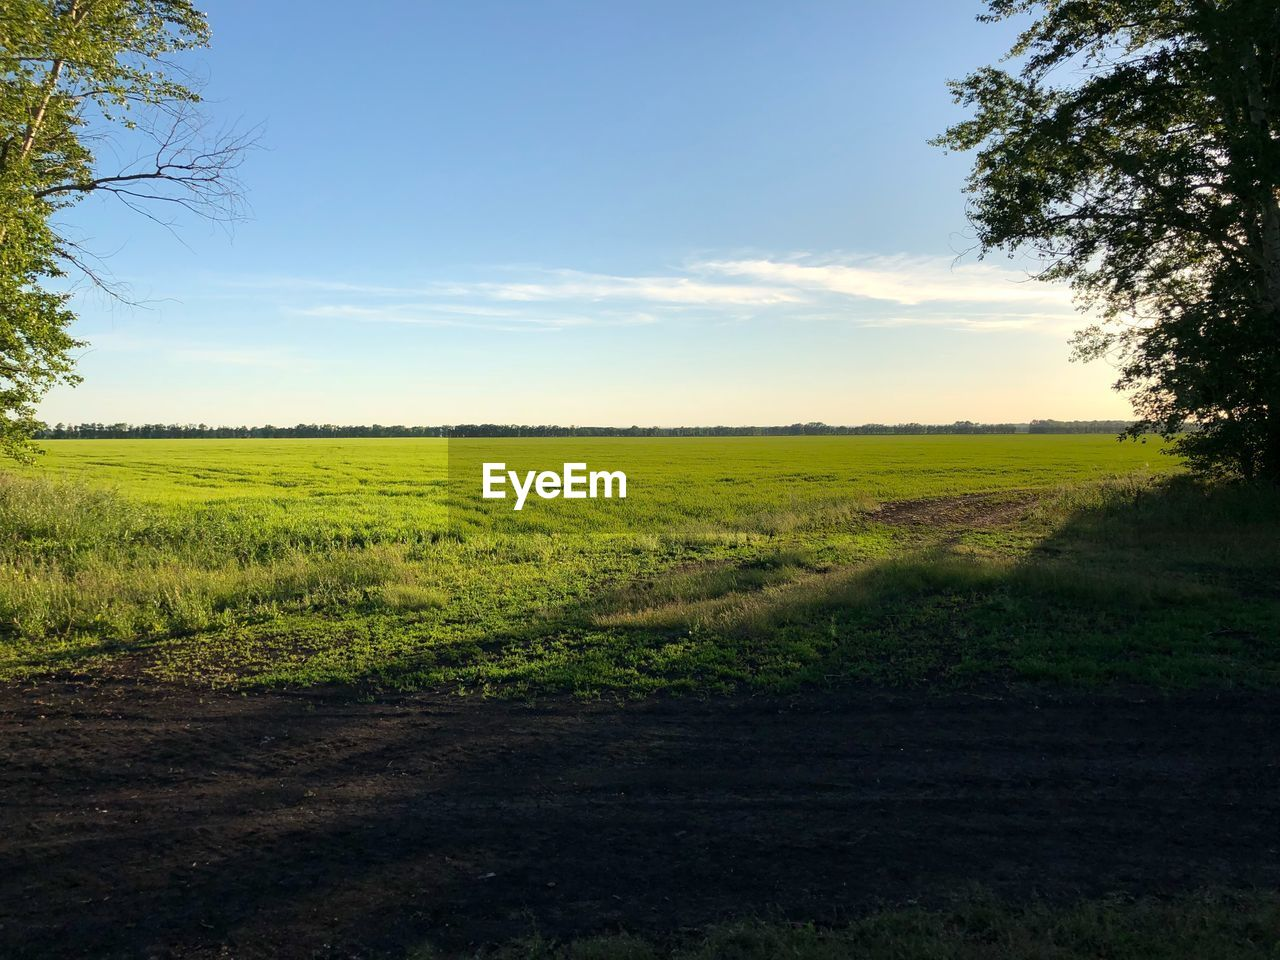 landscape, environment, field, tranquil scene, land, tranquility, sky, scenics - nature, grass, nature, rural scene, beauty in nature, plant, no people, horizon over land, agriculture, horizon, growth, day, non-urban scene, outdoors